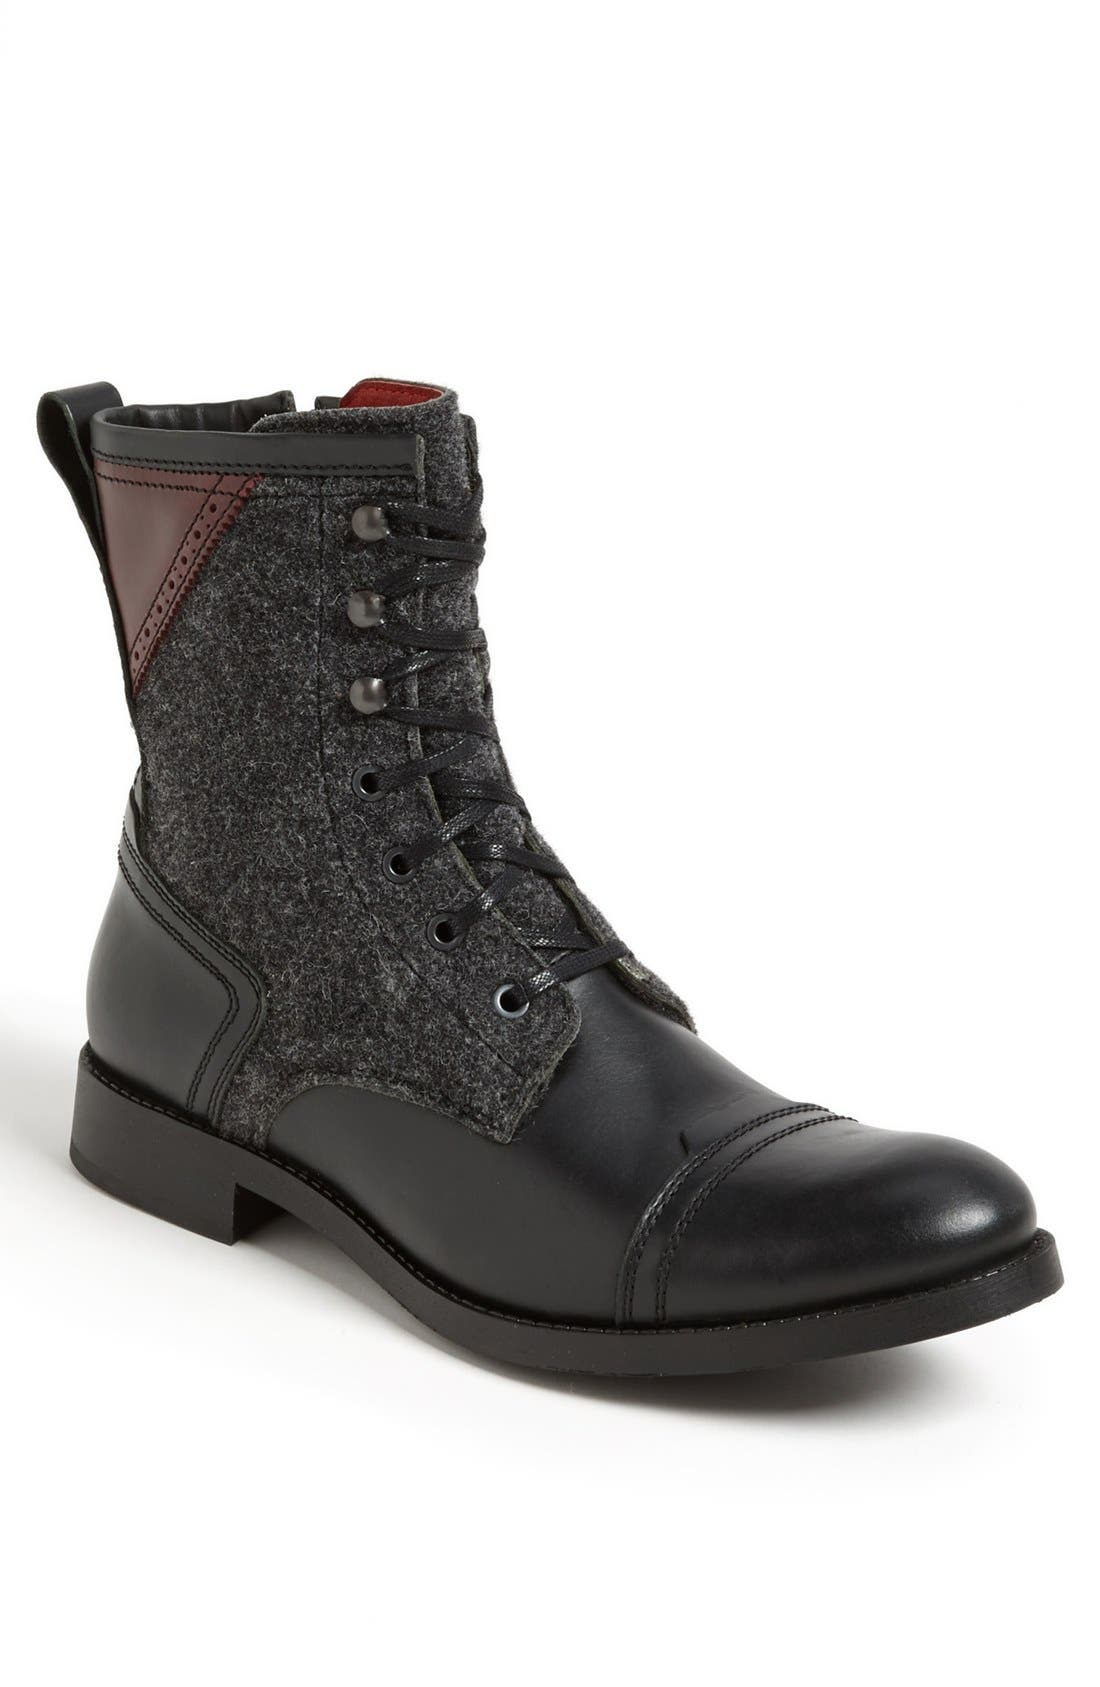 Main Image - Kenneth Cole New York 'Brush It Off' Cap Toe Boot